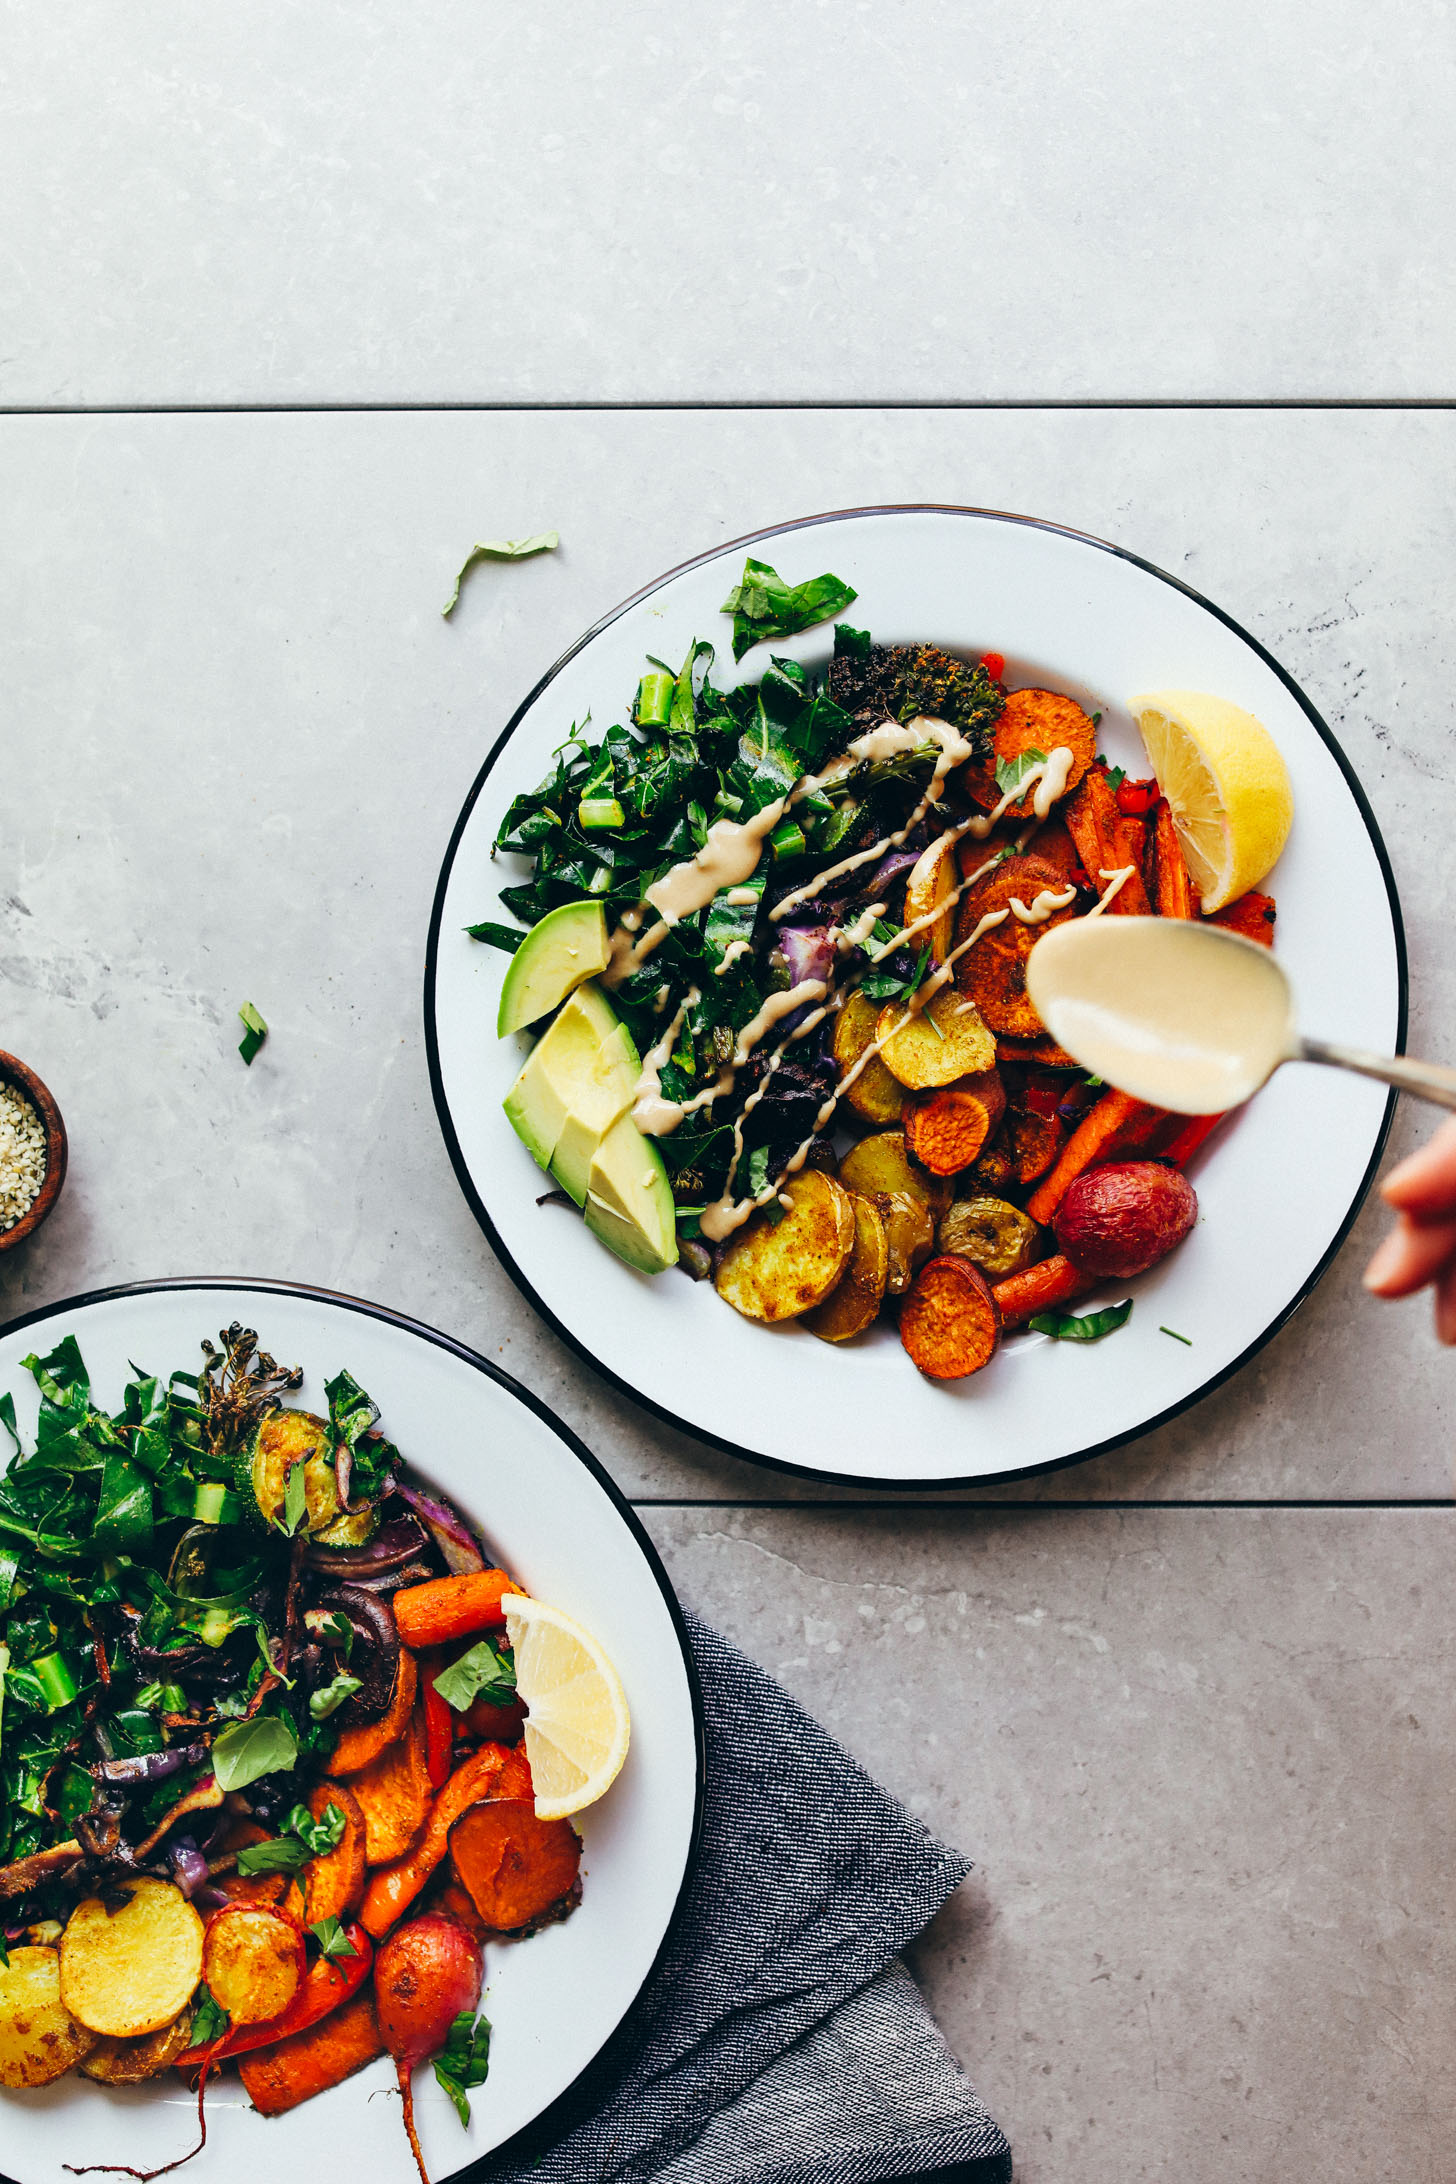 Drizzling tahini dressing onto a nourishing, delicious Roasted Rainbow Vegetable Bowl for a healthy plant-based meal